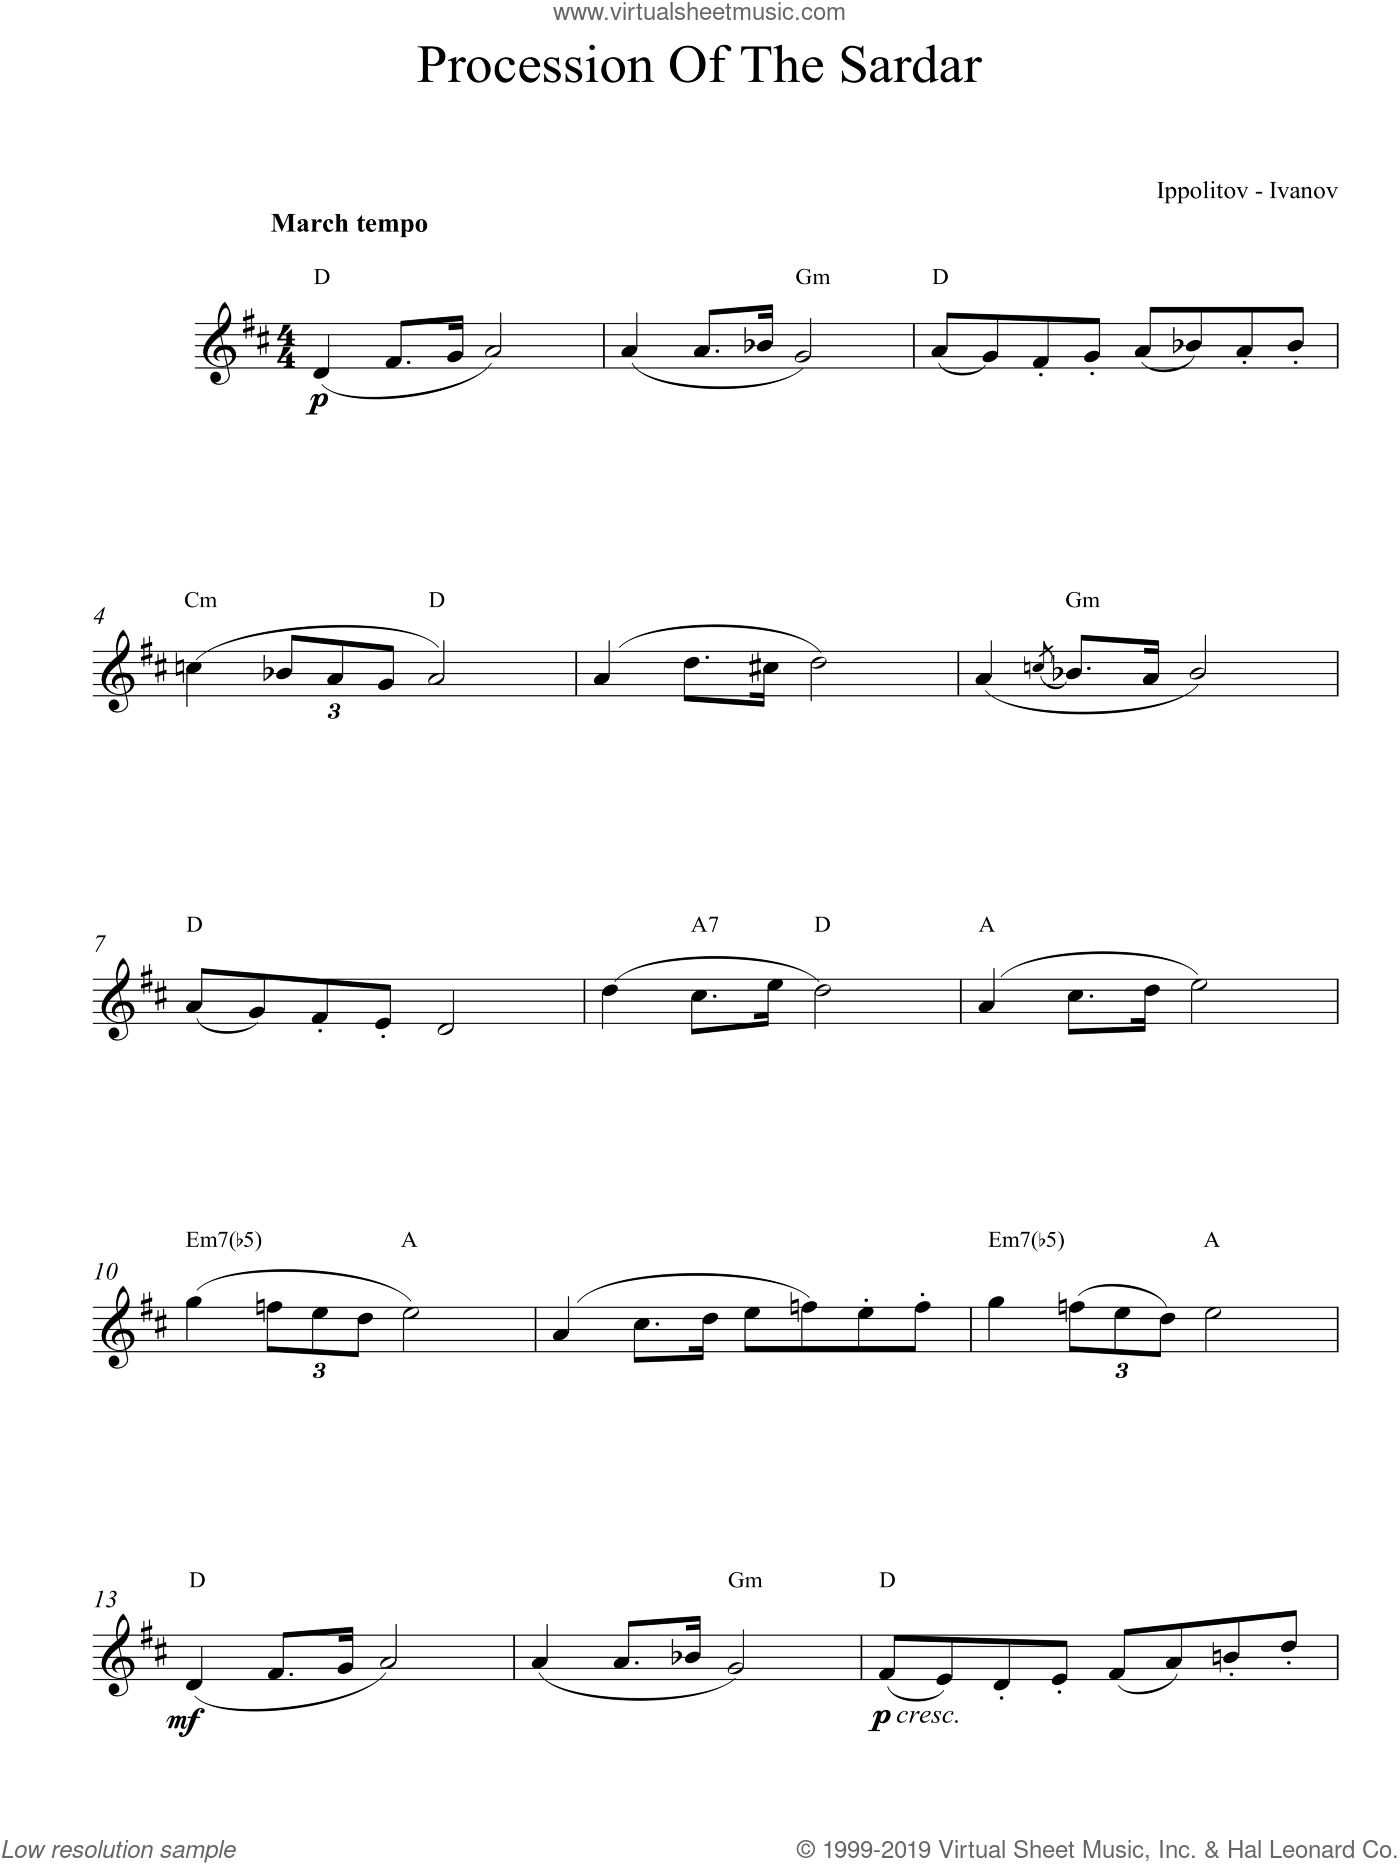 Procession Of The Sardar sheet music for voice and other instruments (fake book) by Ivanov Ippolitov. Score Image Preview.